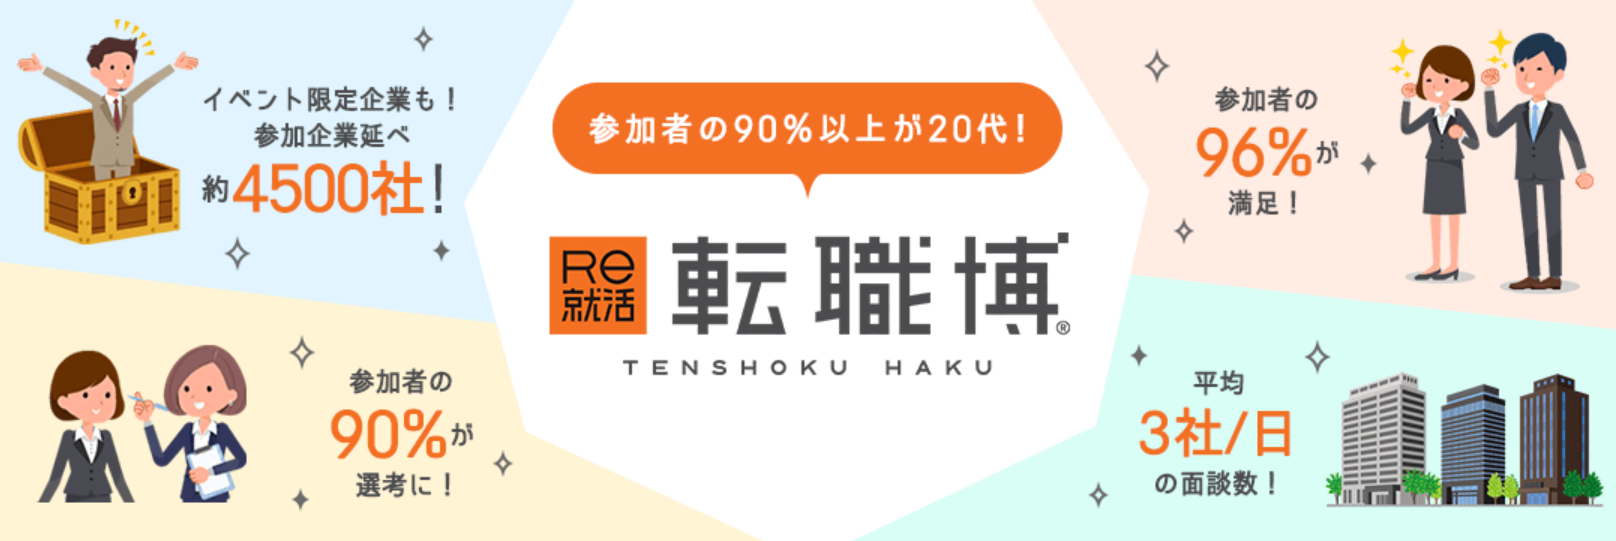 Re就活エージェント